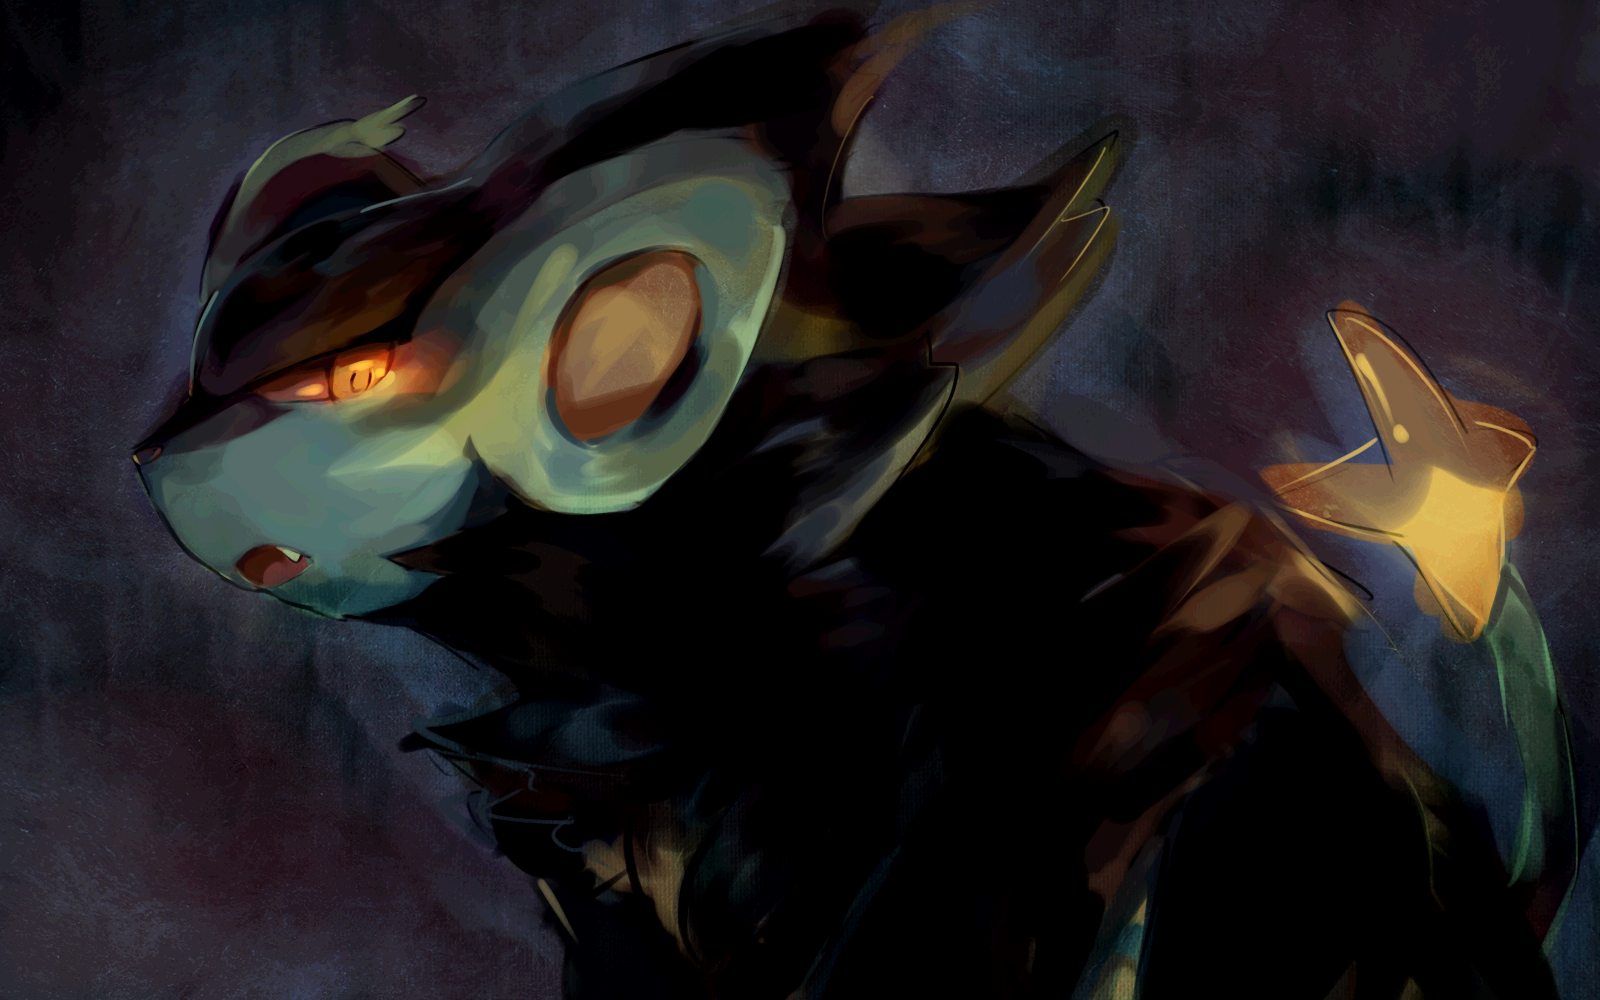 Pokemon Luxray 1440x900 Wallpaper 789525